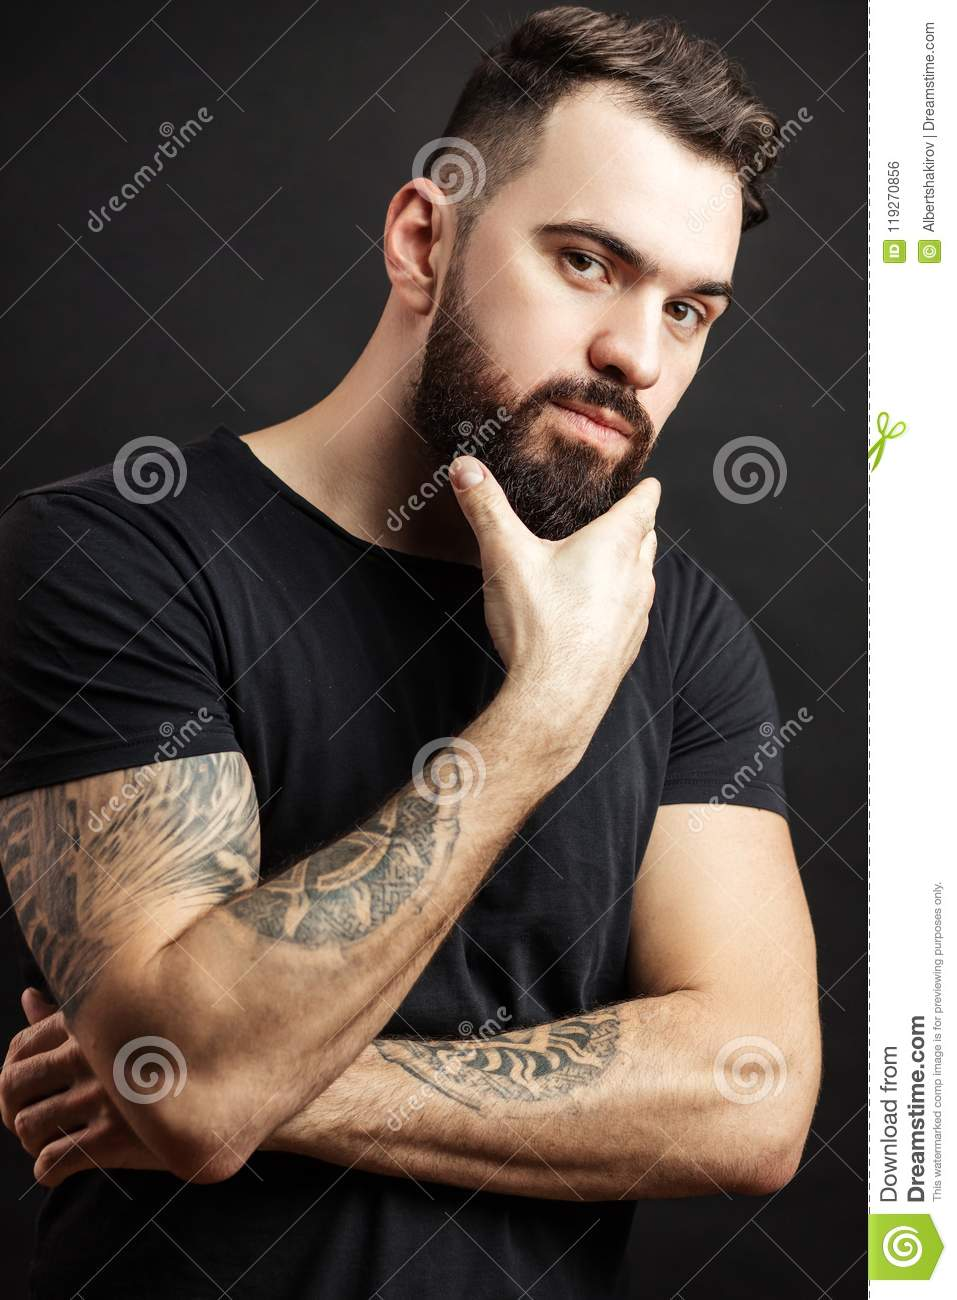 Strong man in black tight fitted shirt with a serious expression on his face.